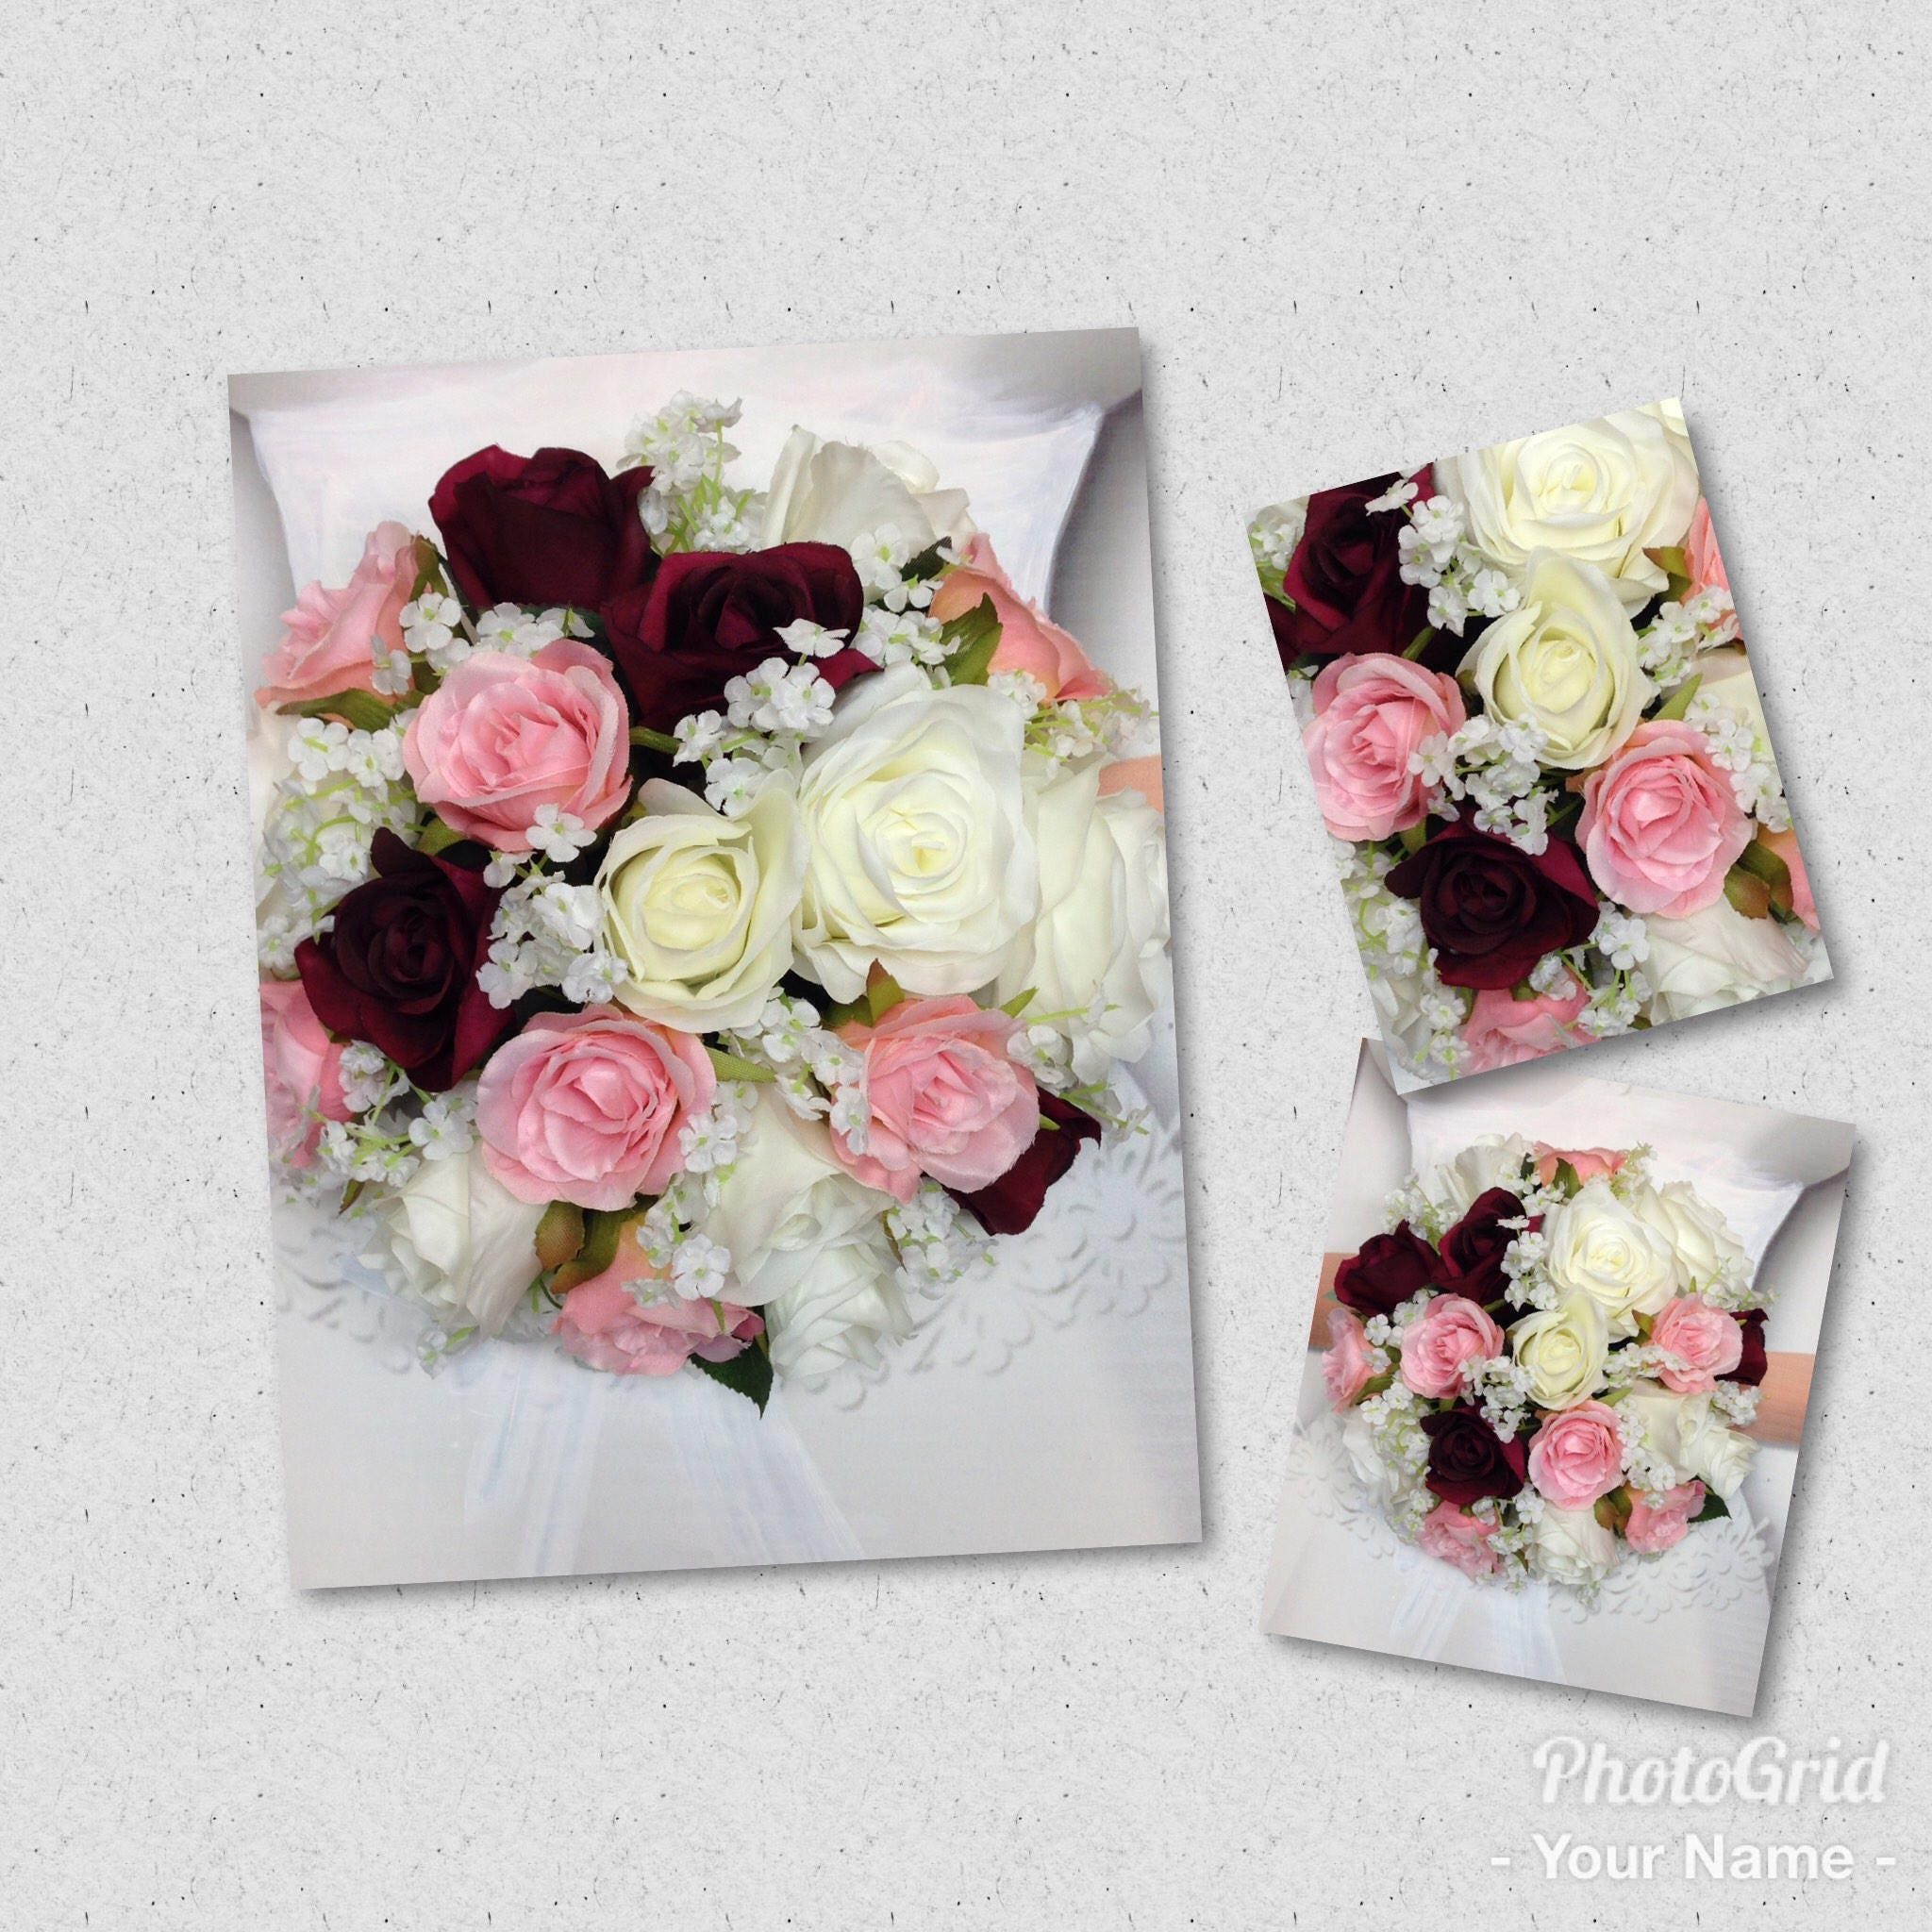 New Artificial White Wine And Blush Wedding Bouquet 9 In Diameter Babys Breath Bridal With Roses